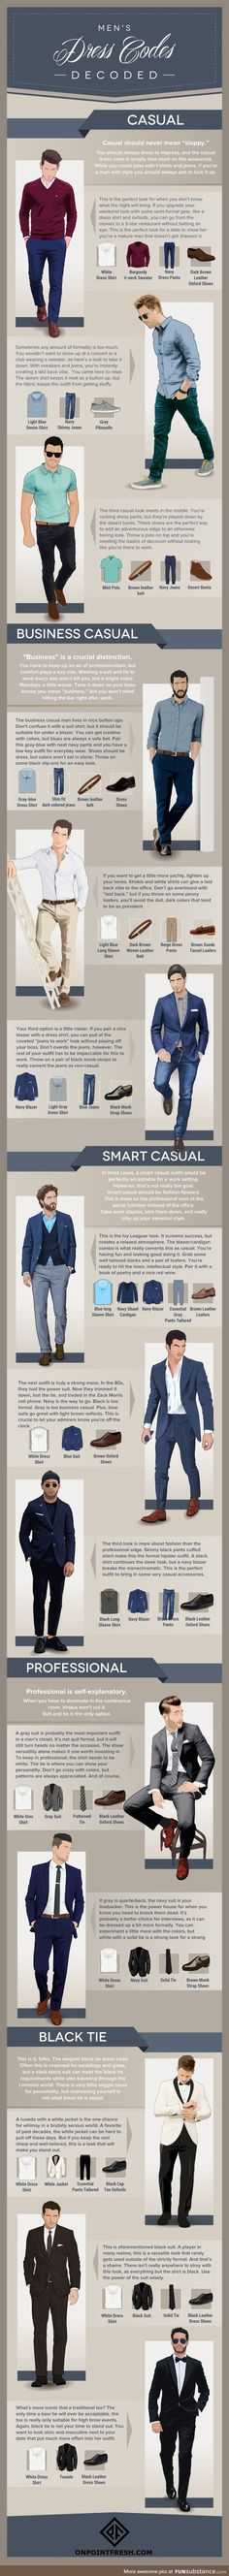 Business Casual For Men - Visual Guide-Business Casual For Men – Visual Guide Men& Dress Codes Infographic Mens fashion Infographic - Fashion Infographic, Herren Outfit, Moda Casual, Business Casual Men, Business Suits, Mode Masculine, Men Style Tips, Mens Style Guide, Gentleman Style